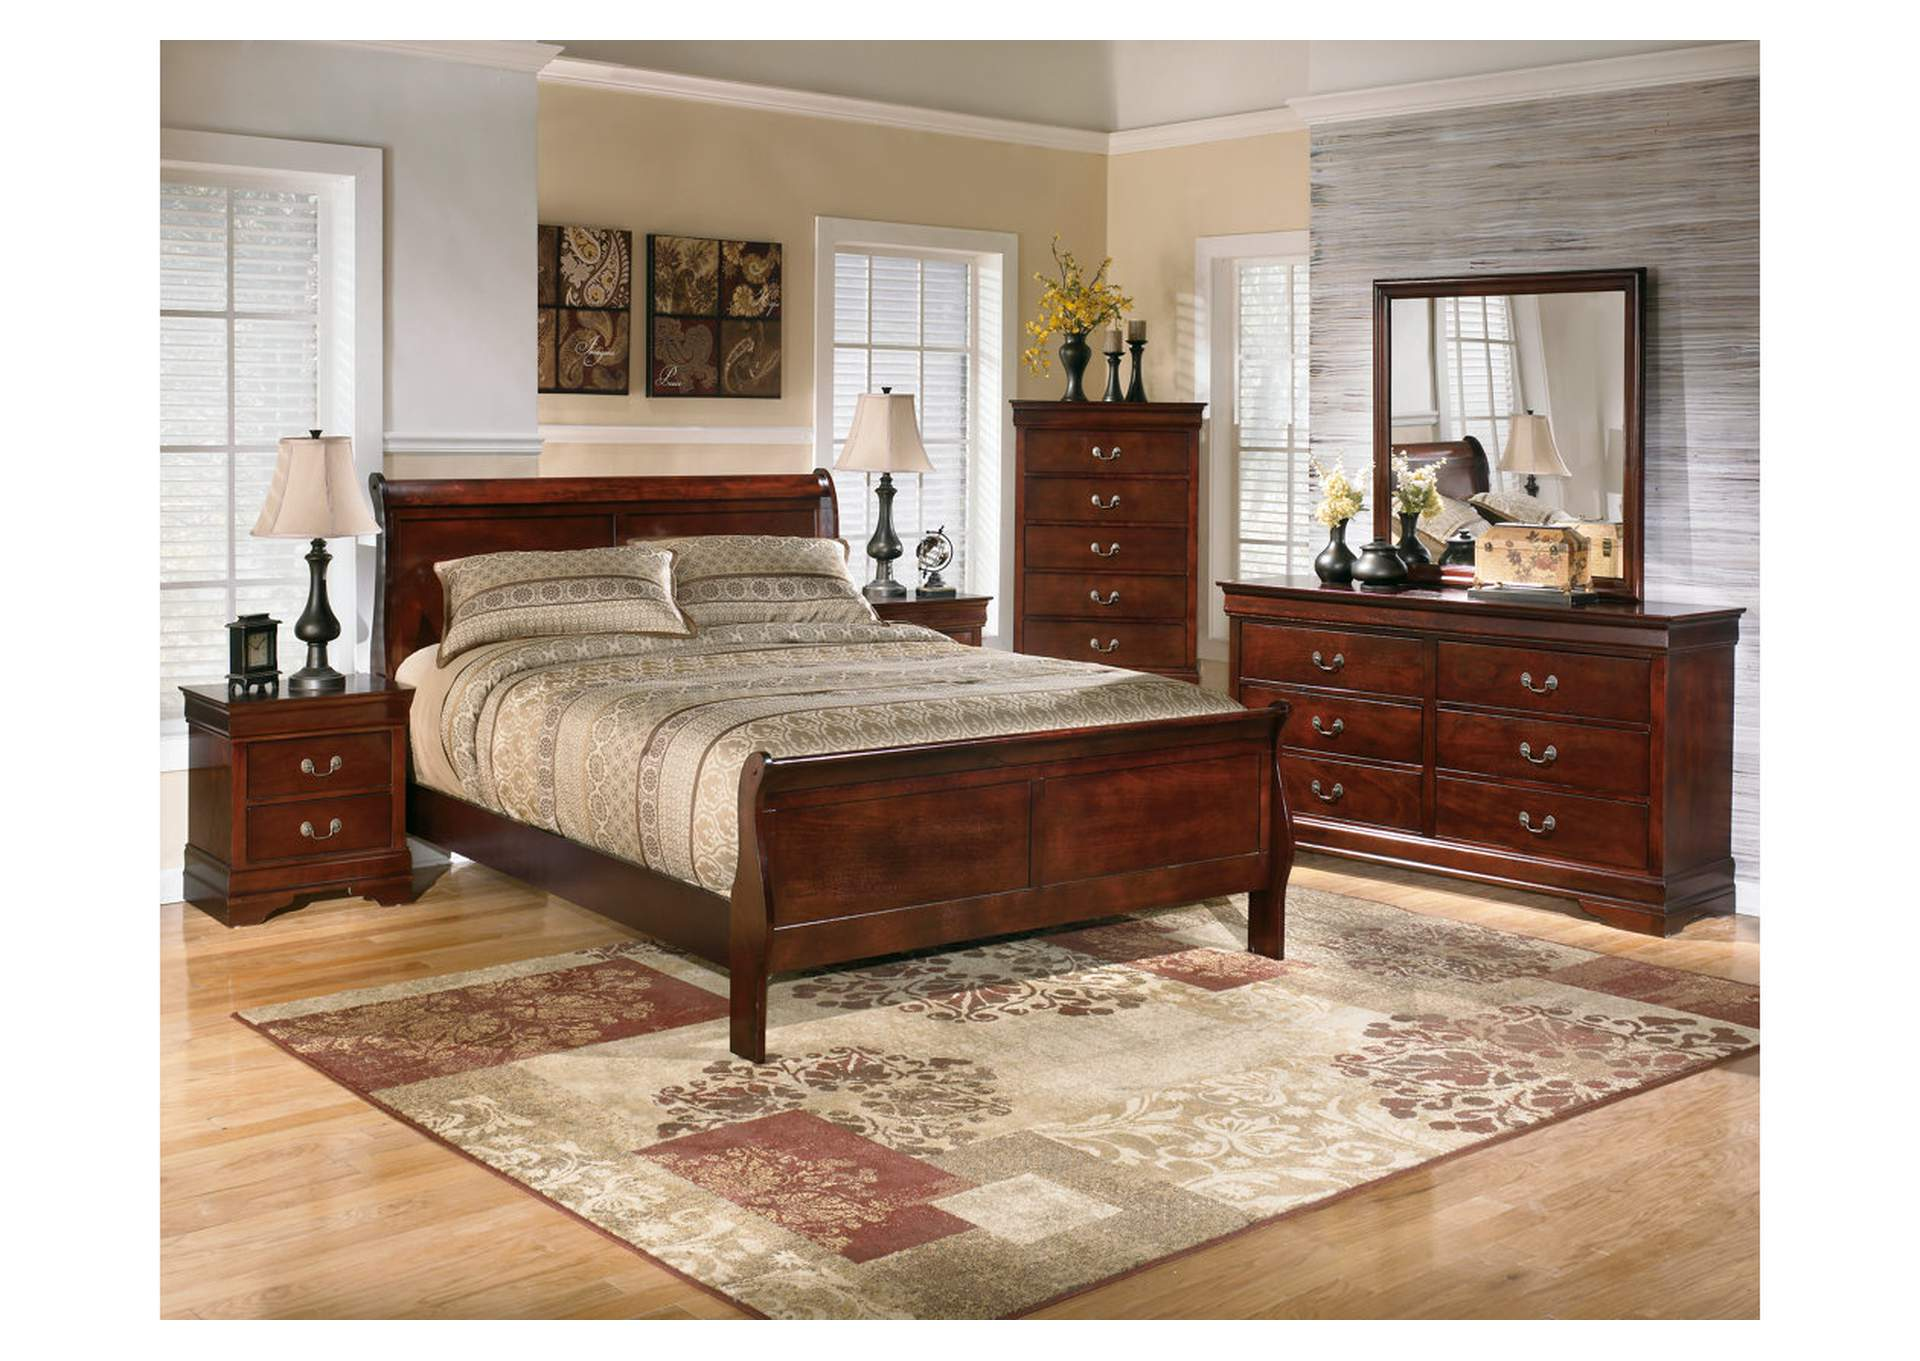 Alisdair California King Sleigh Bed w/Dresser, Mirror & Drawer Chest,Signature Design By Ashley